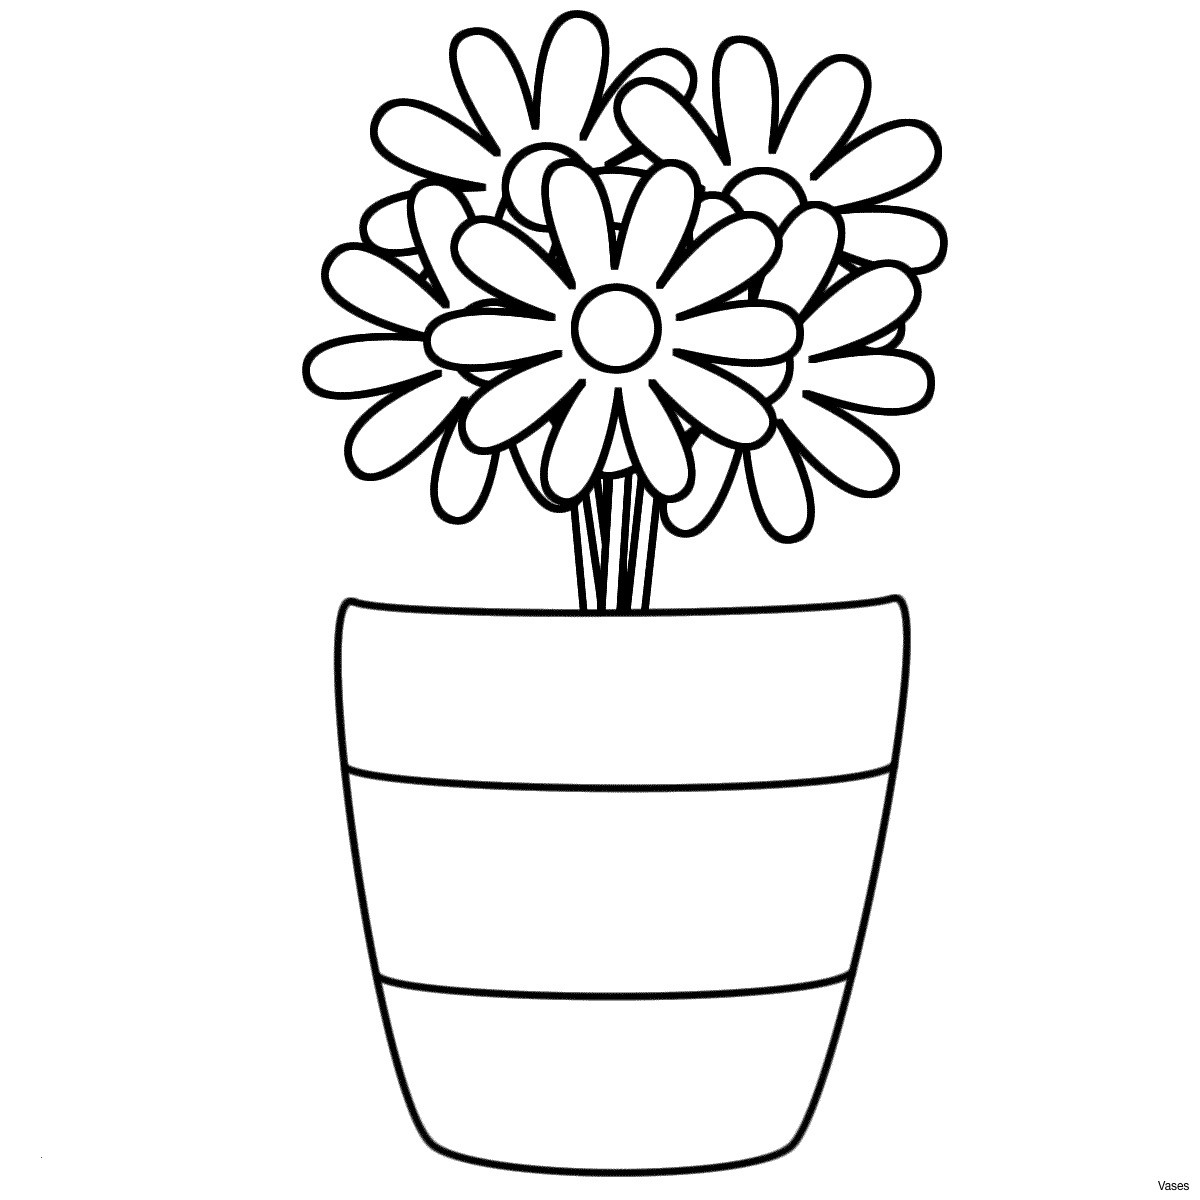 coloring pages hawaiian flowers Collection-Flower Coloring Sheets for Adults Fabulous Cool Vases Flower Vase 18-i